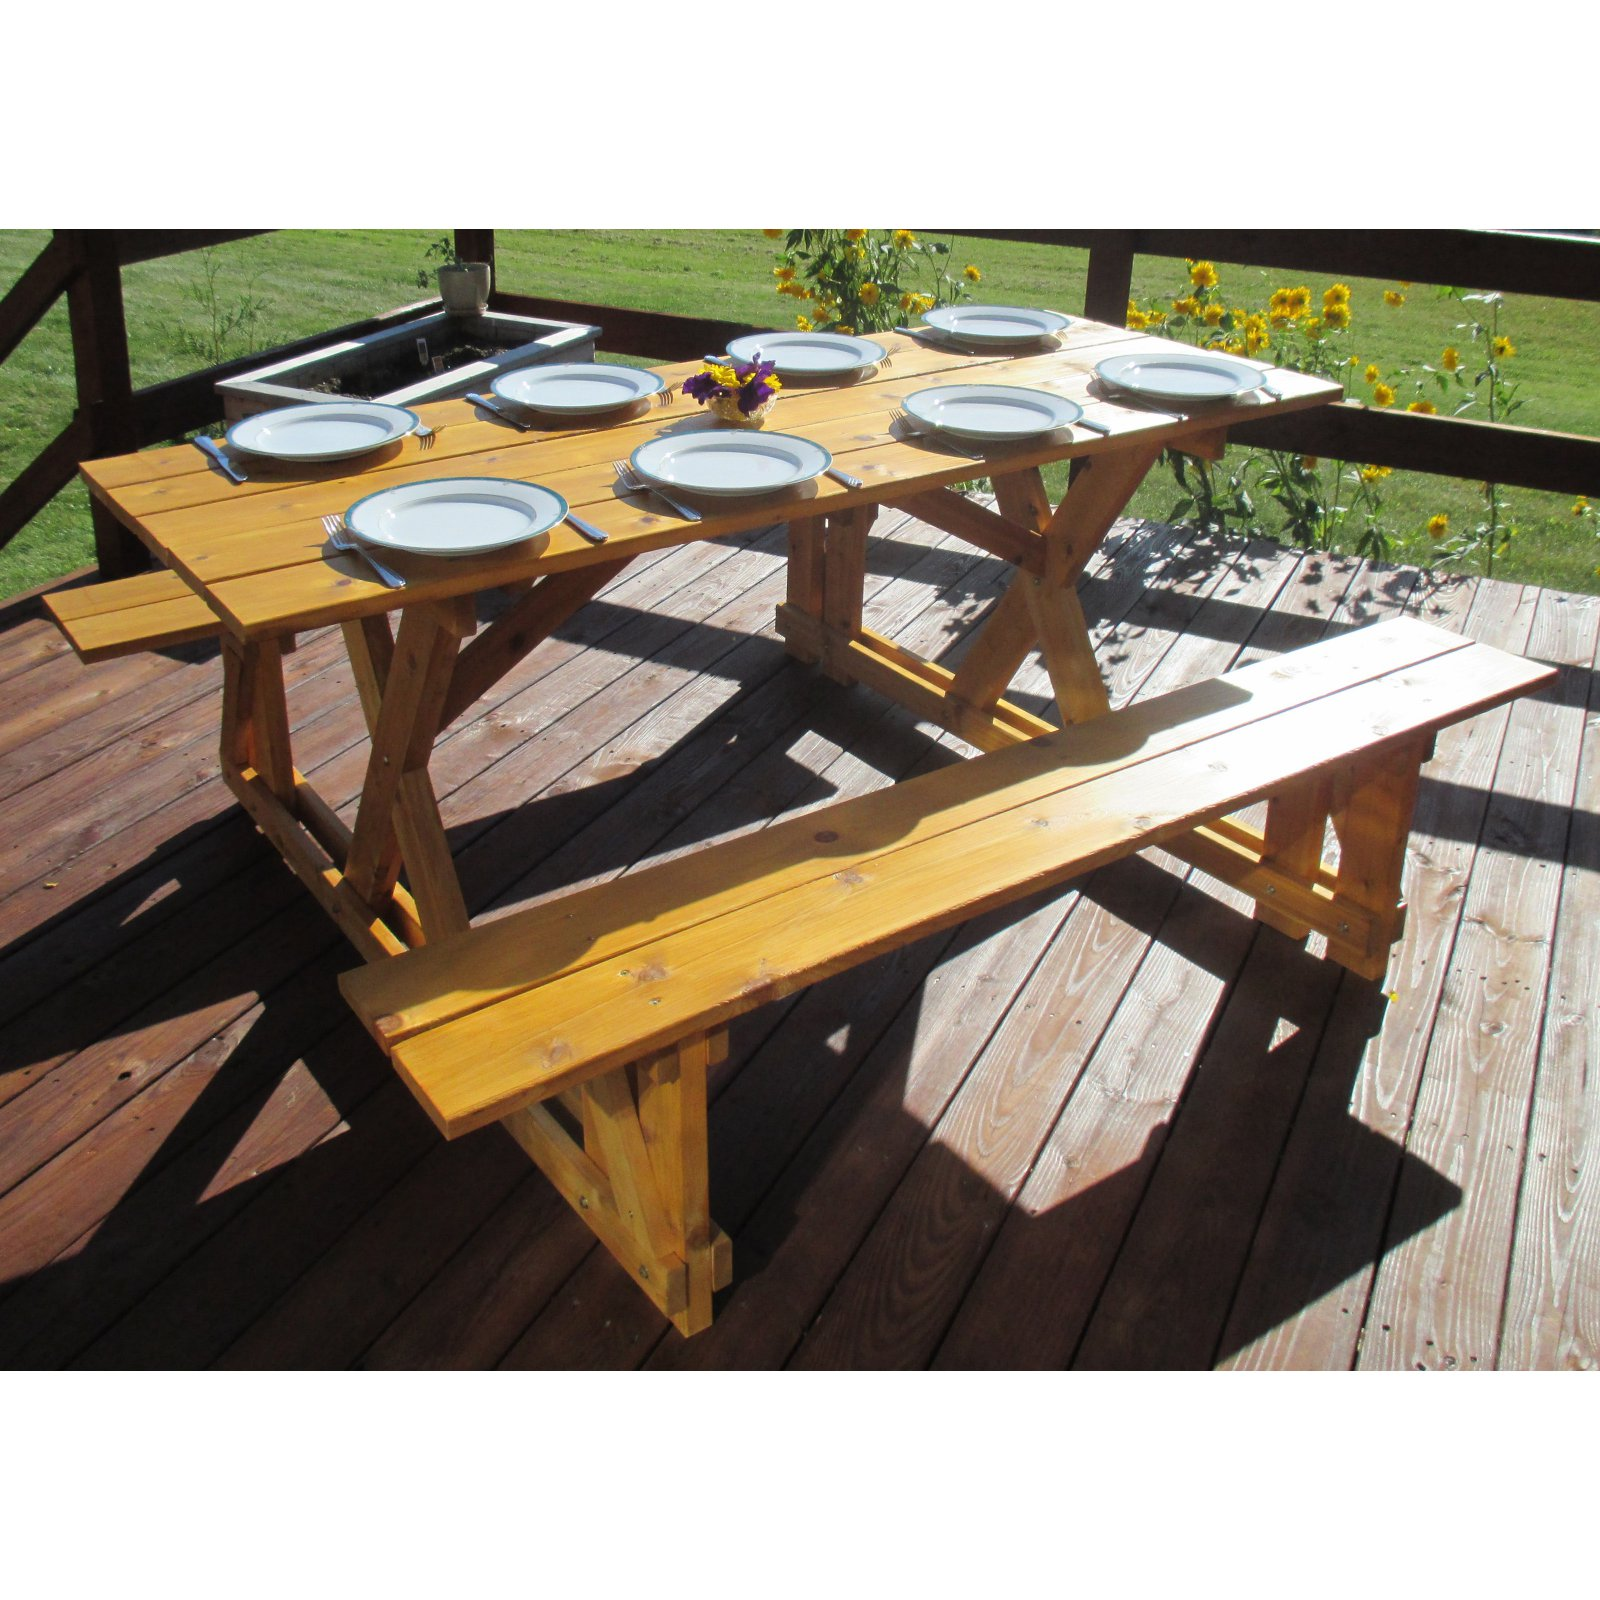 Elegant Infinite Cedar EZ Access Cedar Picnic Table